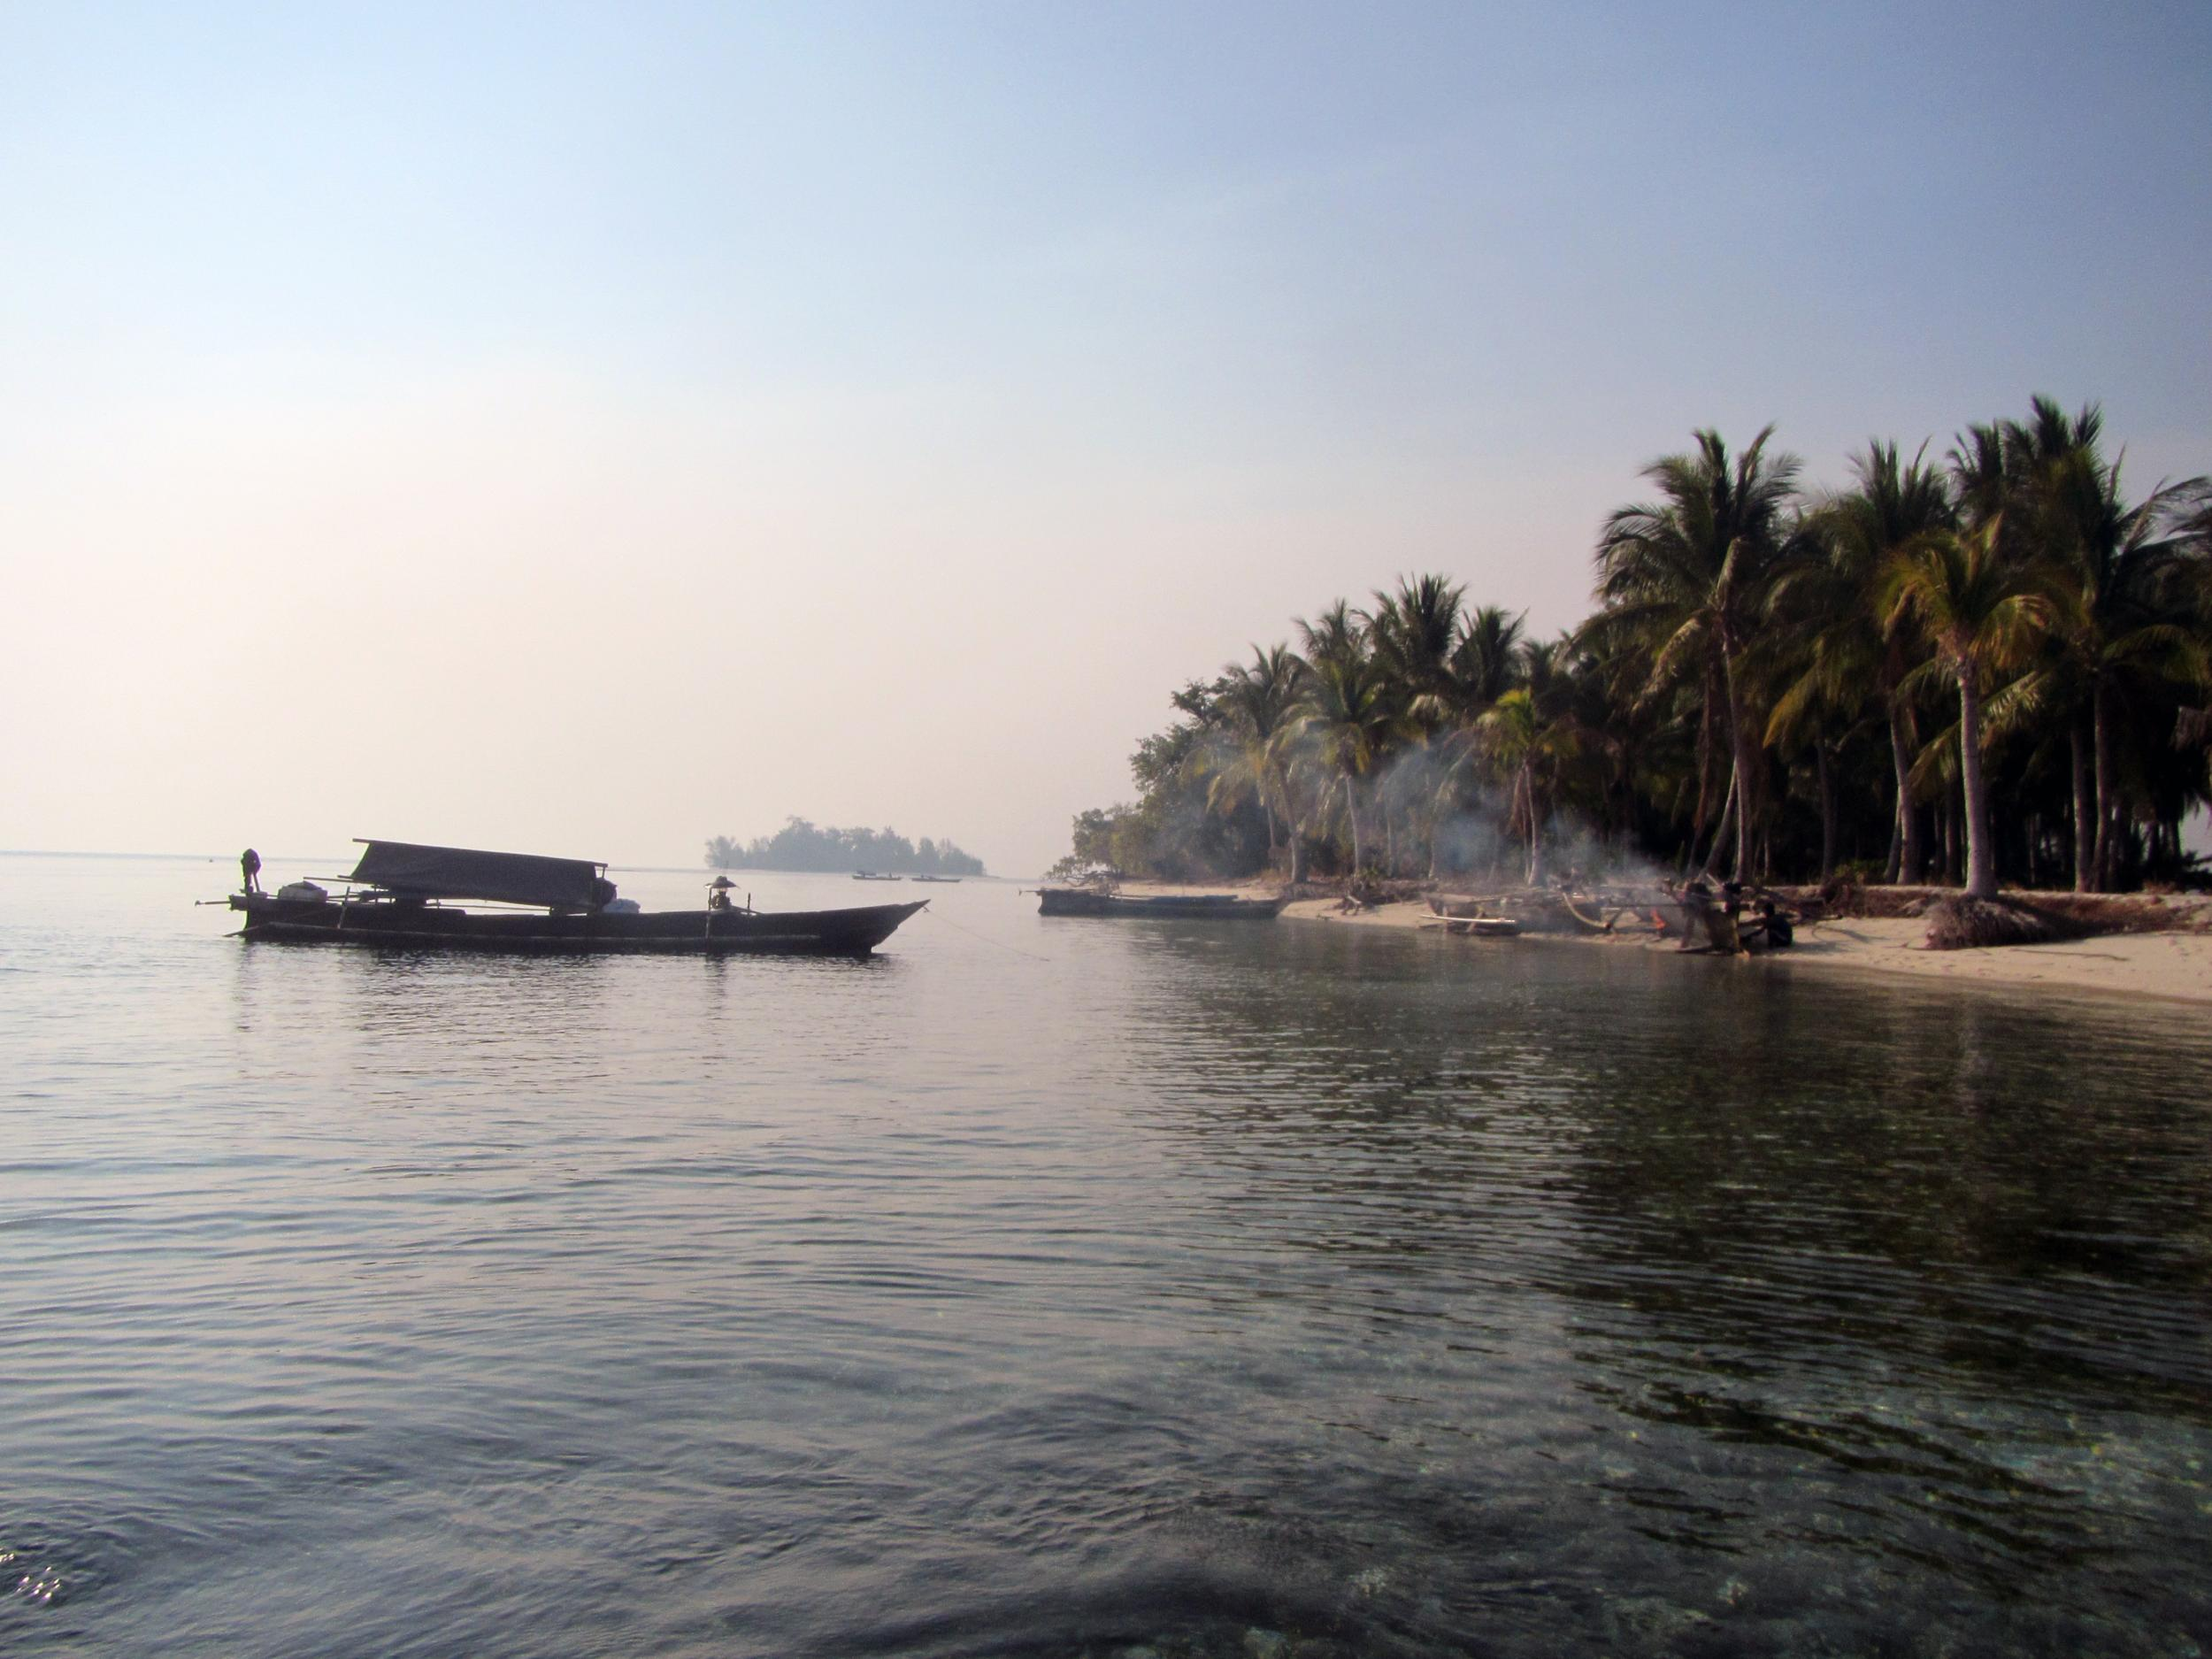 A small, unnamed island serves as a haven for visiting Bajau houseboats